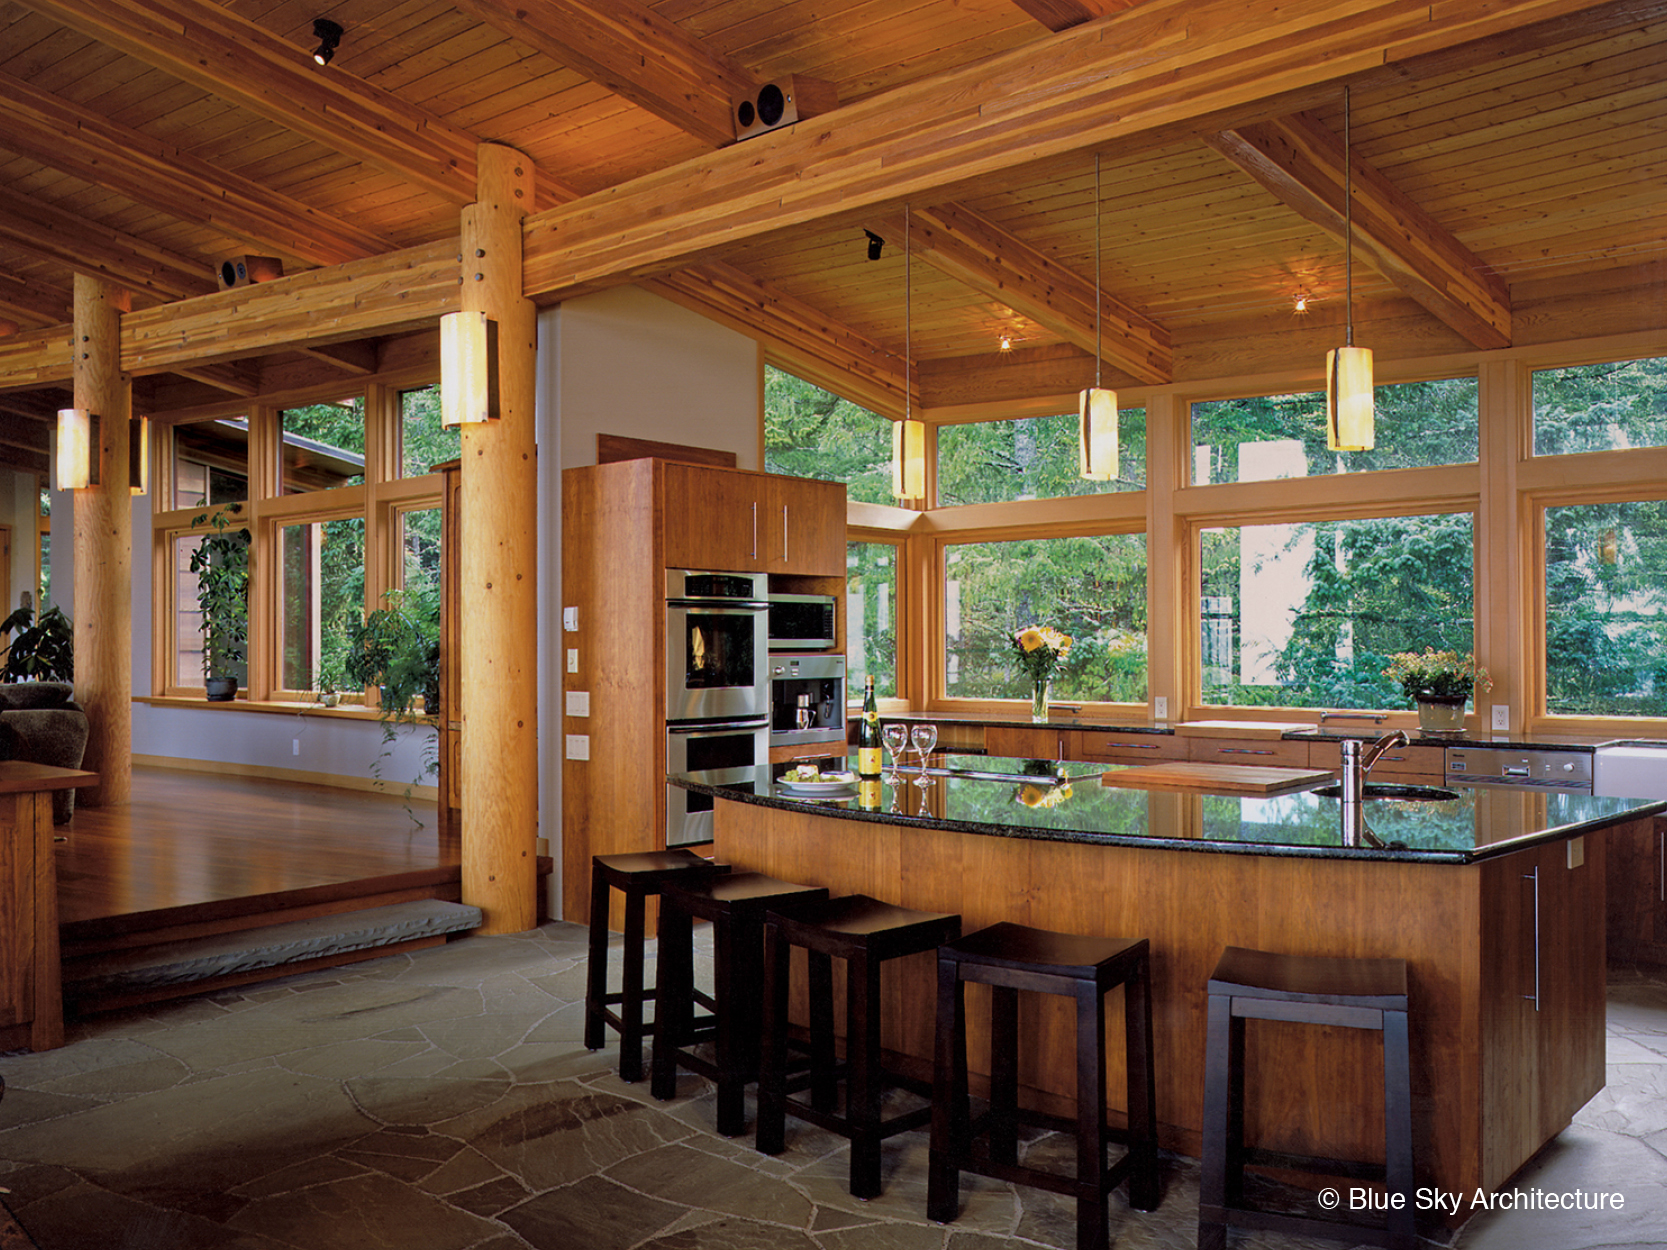 Post and beam framed kitchen in Hill House